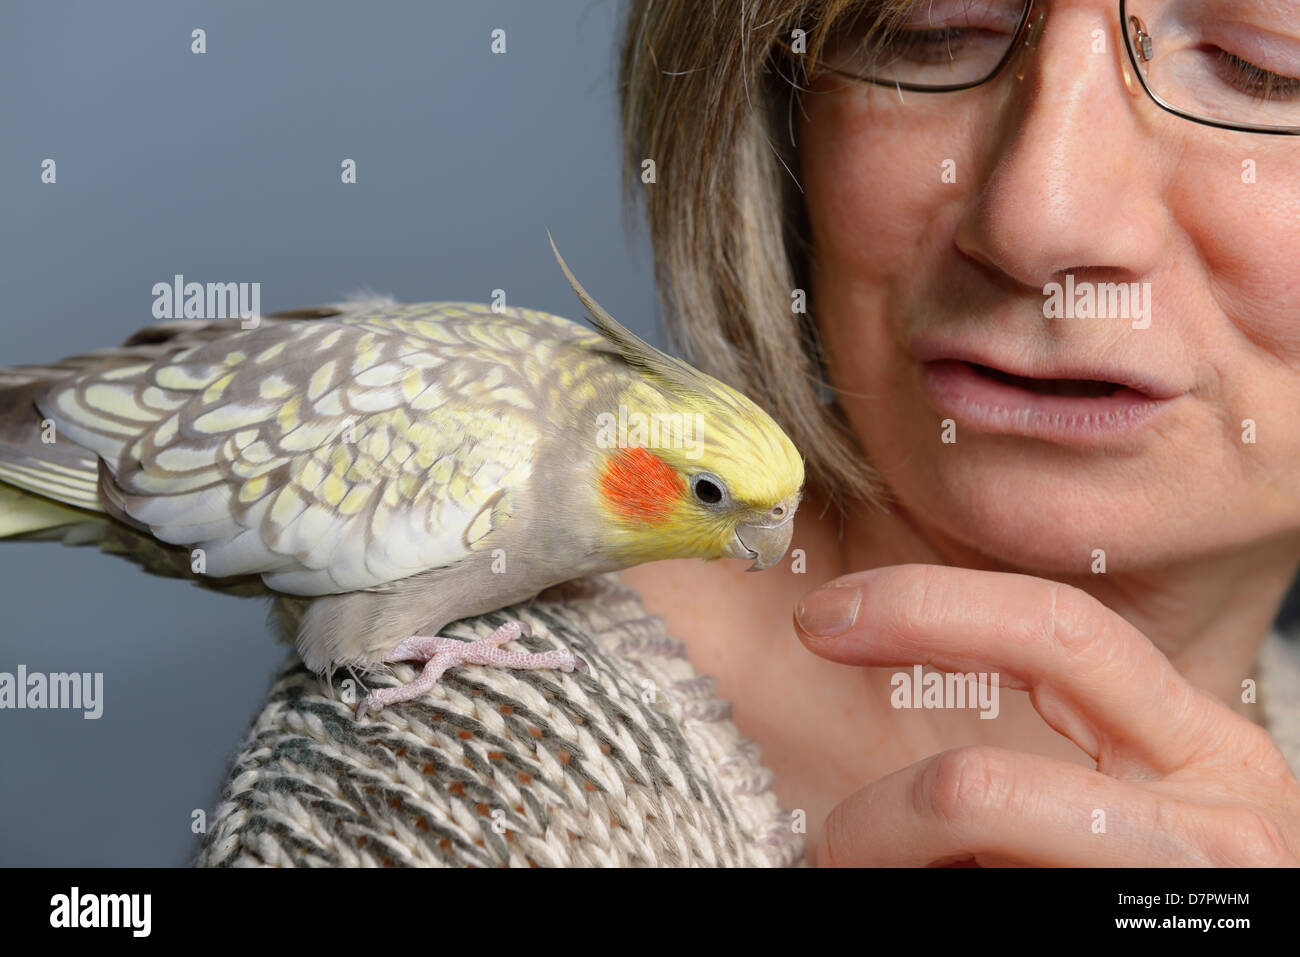 Relaxed female pet pearl cockatiel bird on woman's shoulder looking at her finger - Stock Image